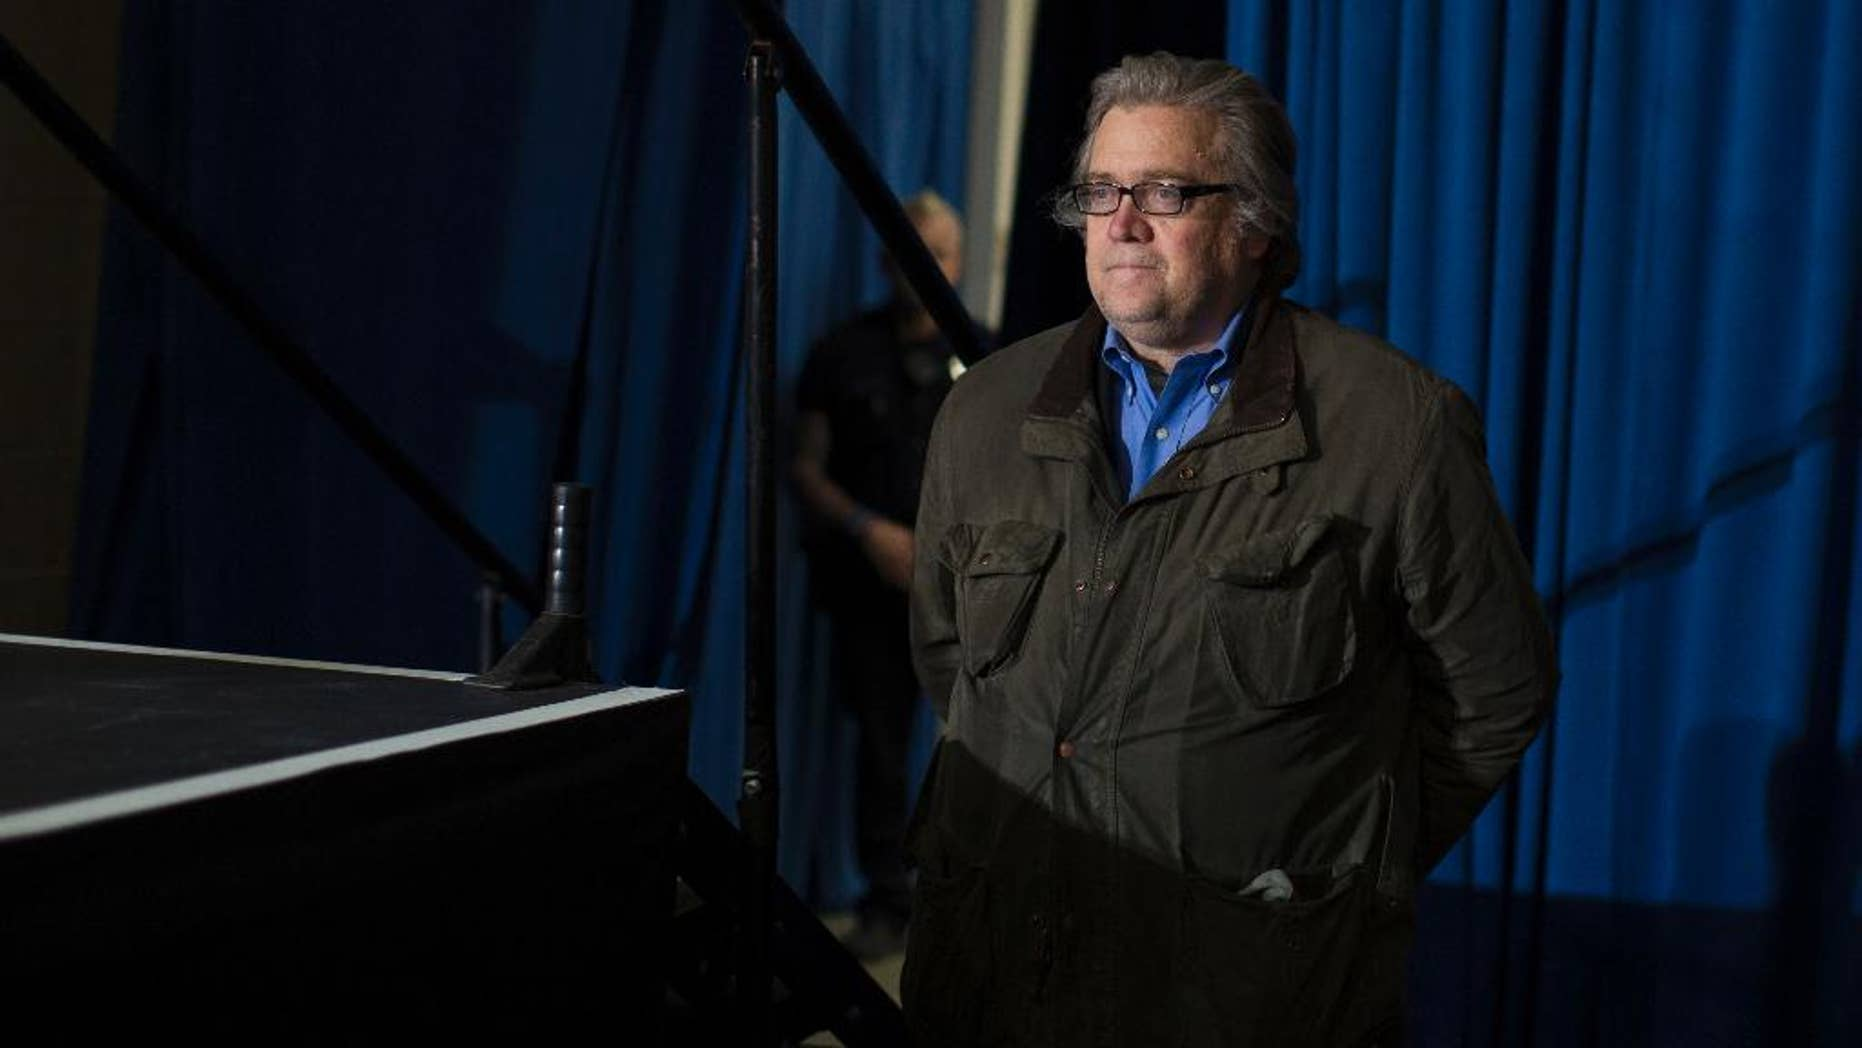 FILE - In this Saturday, Nov. 5, 2016, file photo, Stephen Bannon, campaign CEO for Republican presidential candidate Donald Trump, looks on as Trump speaks during a campaign rally in Denver. Following the installation of Breitbart's chief executive, Bannon, to a top job in President-elect Trump's administration, the news organization in its infancy when Barack Obama took office has big expansion plans and the goal of being the best source of news on the new administration. (AP Photo/Evan Vucci, File)